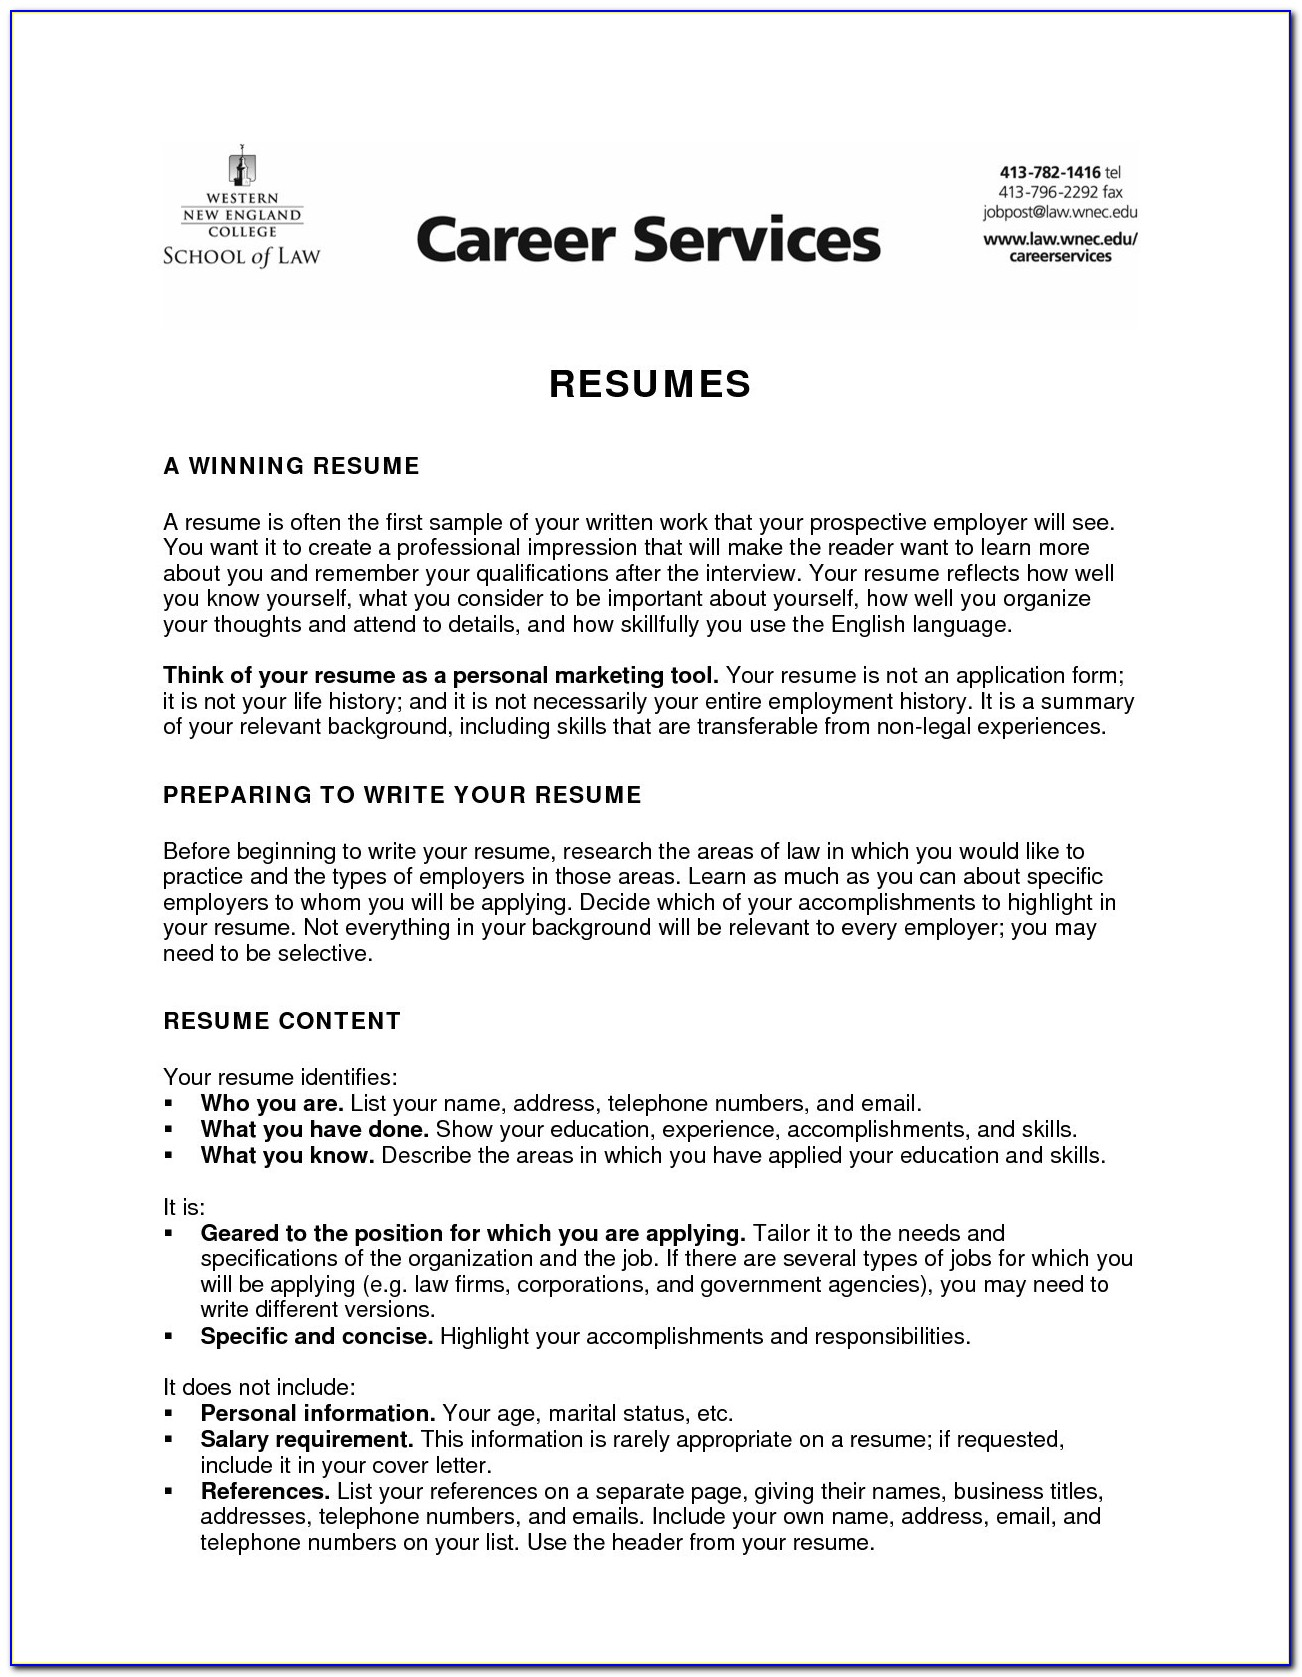 Resume Writing Services Nyc Unique 24 Best Professional Resume Writing Services